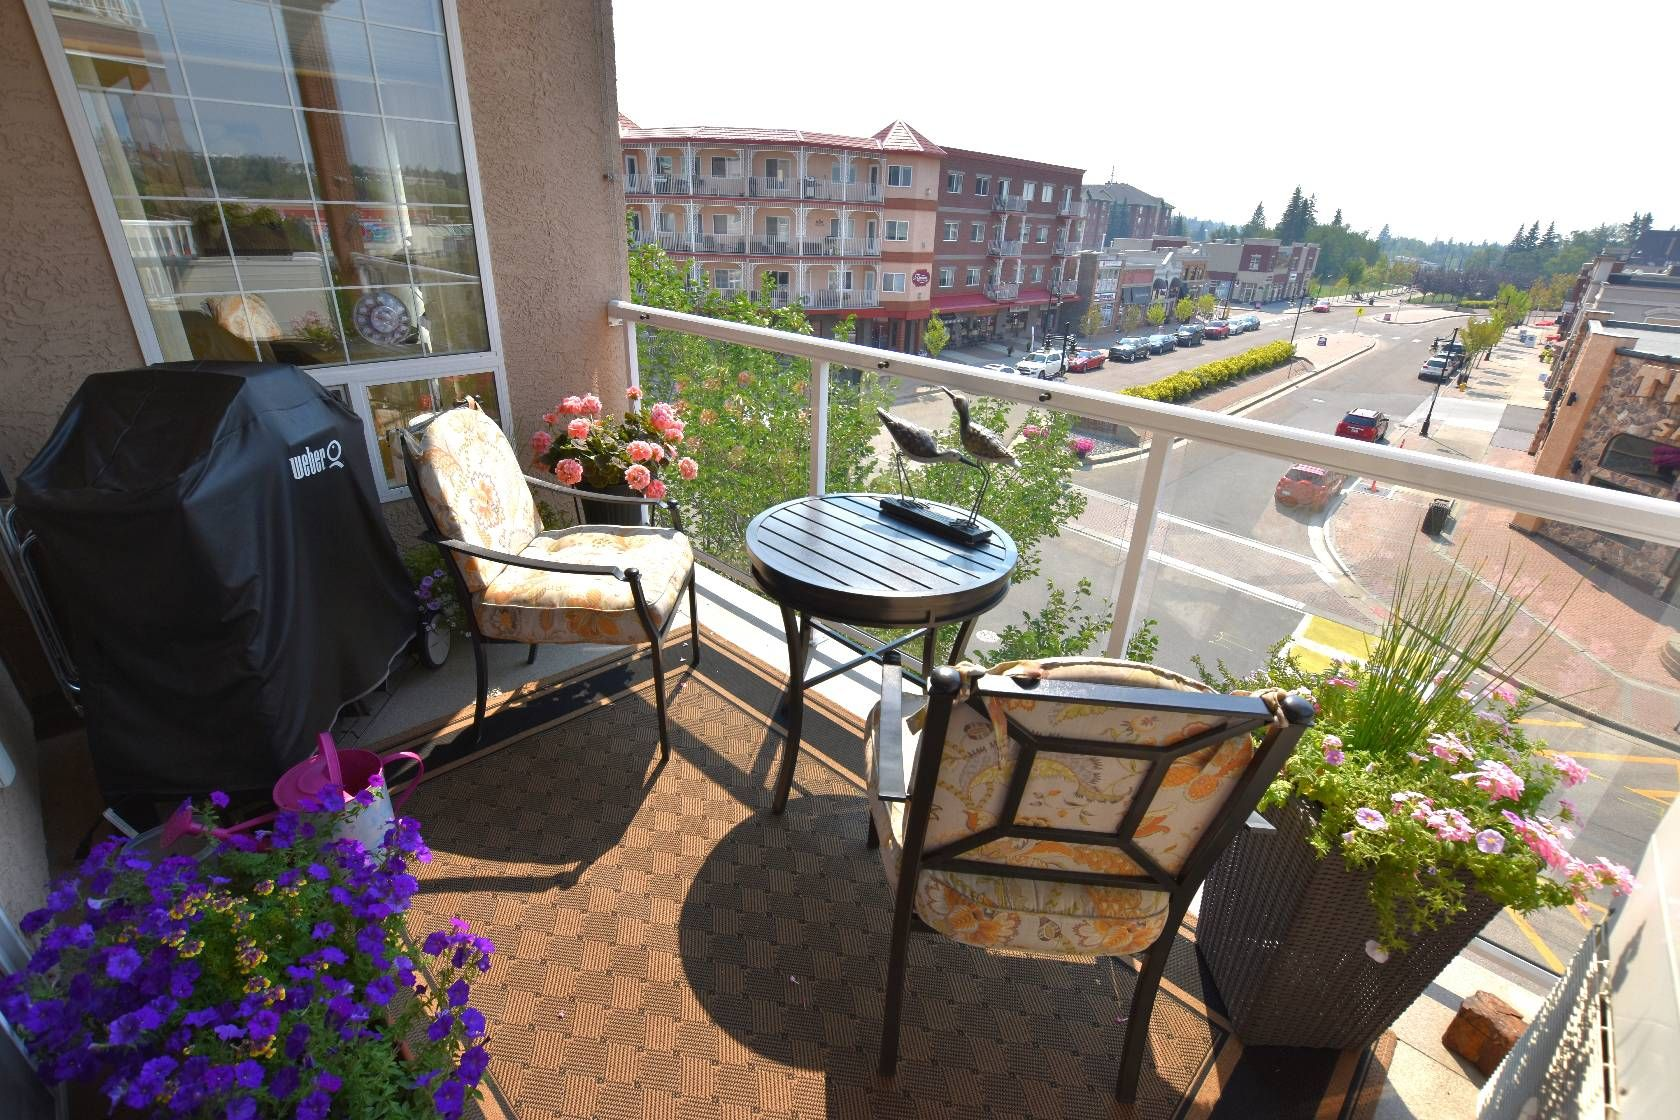 Main Photo: 303, 5 Perron  St. in St. Albert: Downtown Condo for sale